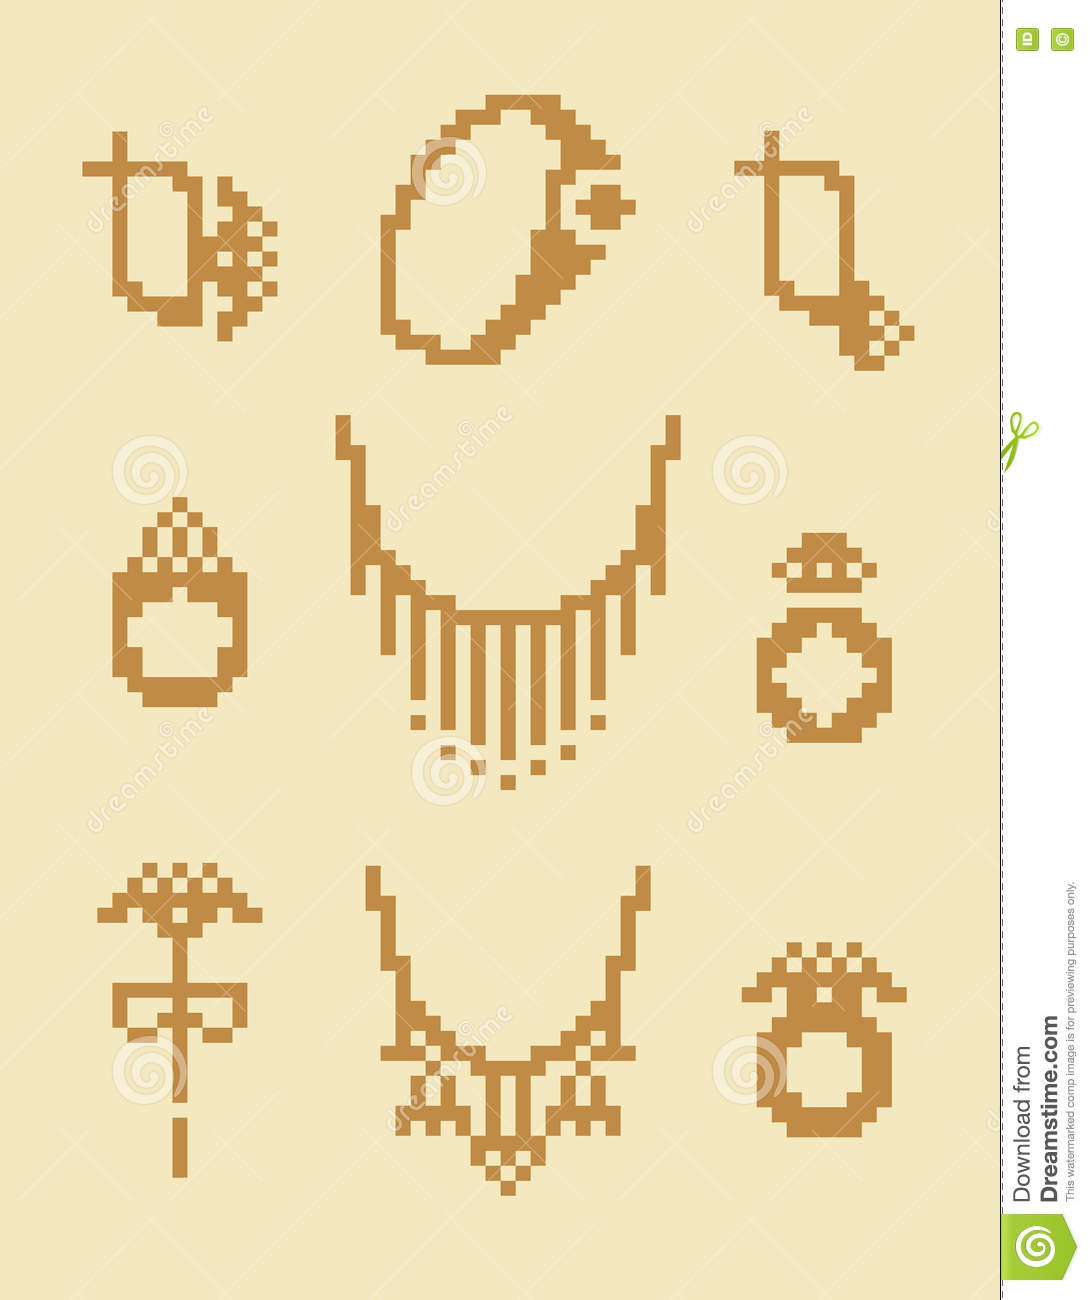 Pixelart Cartoons Illustrations Vector Stock Images 174 Pictures To Download From